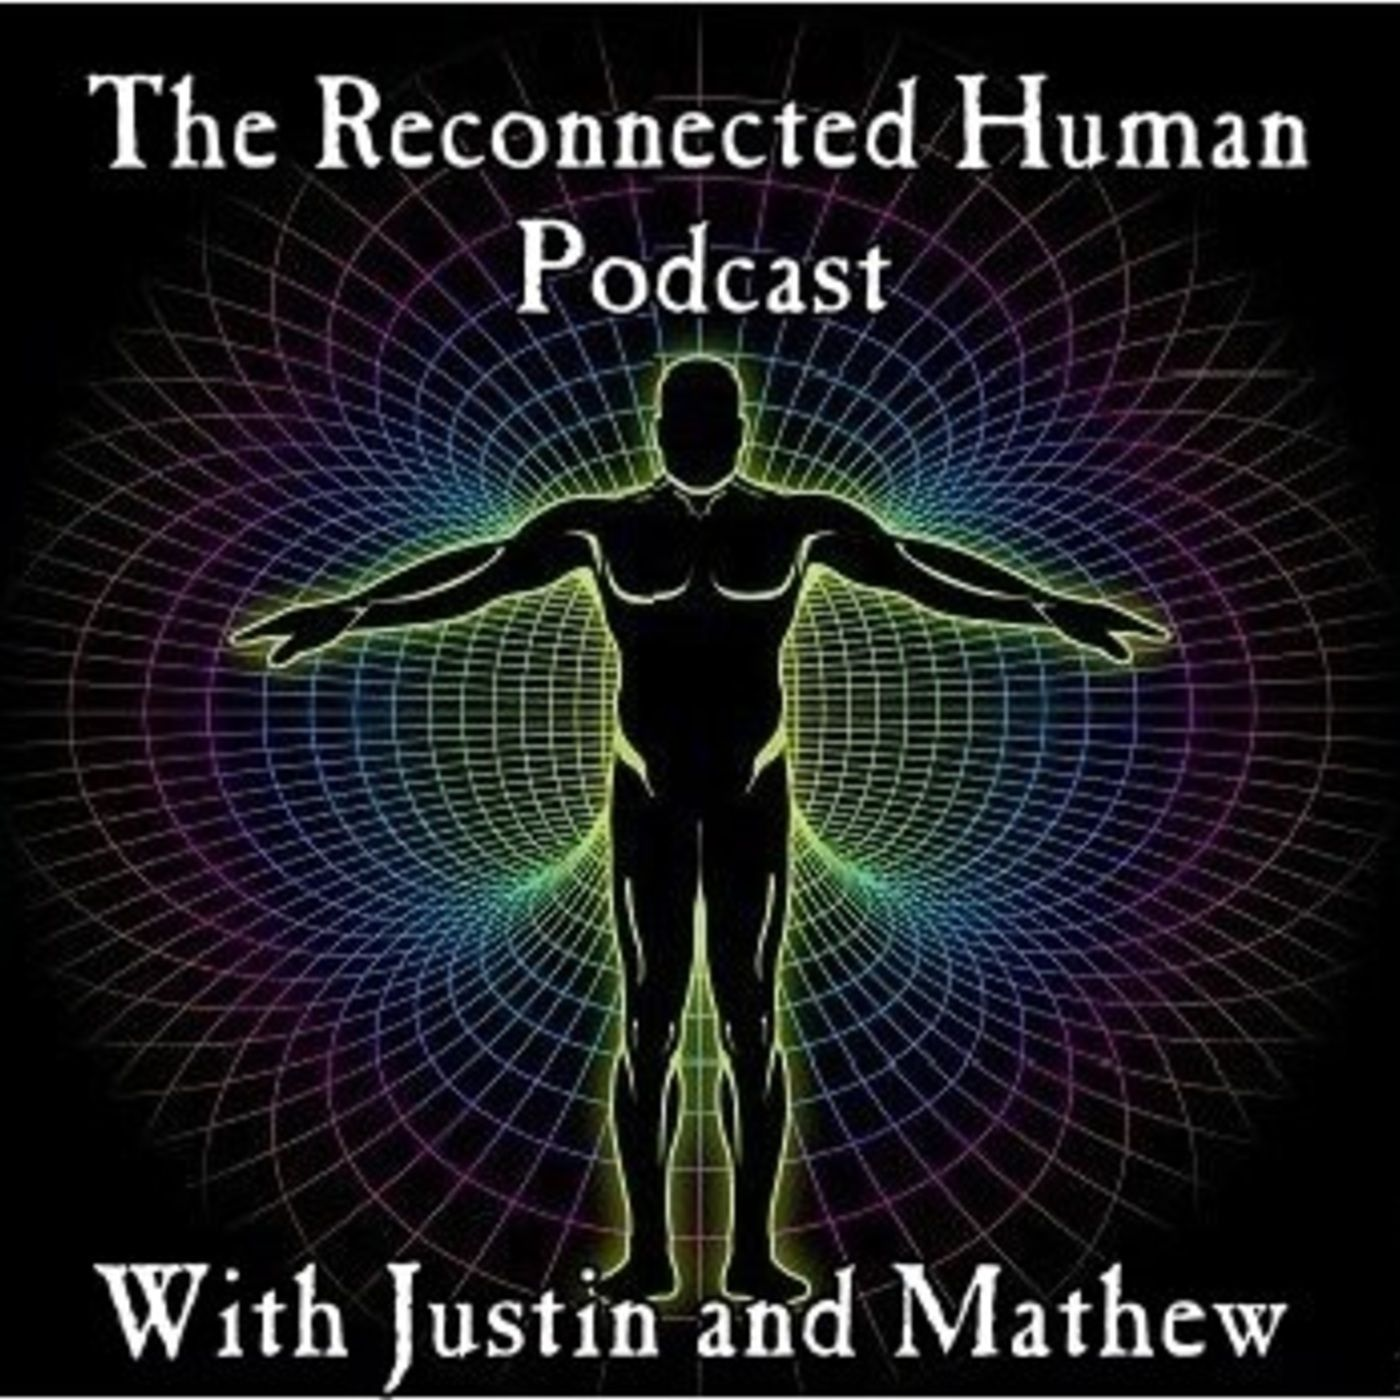 The Reconnected Human Podcast